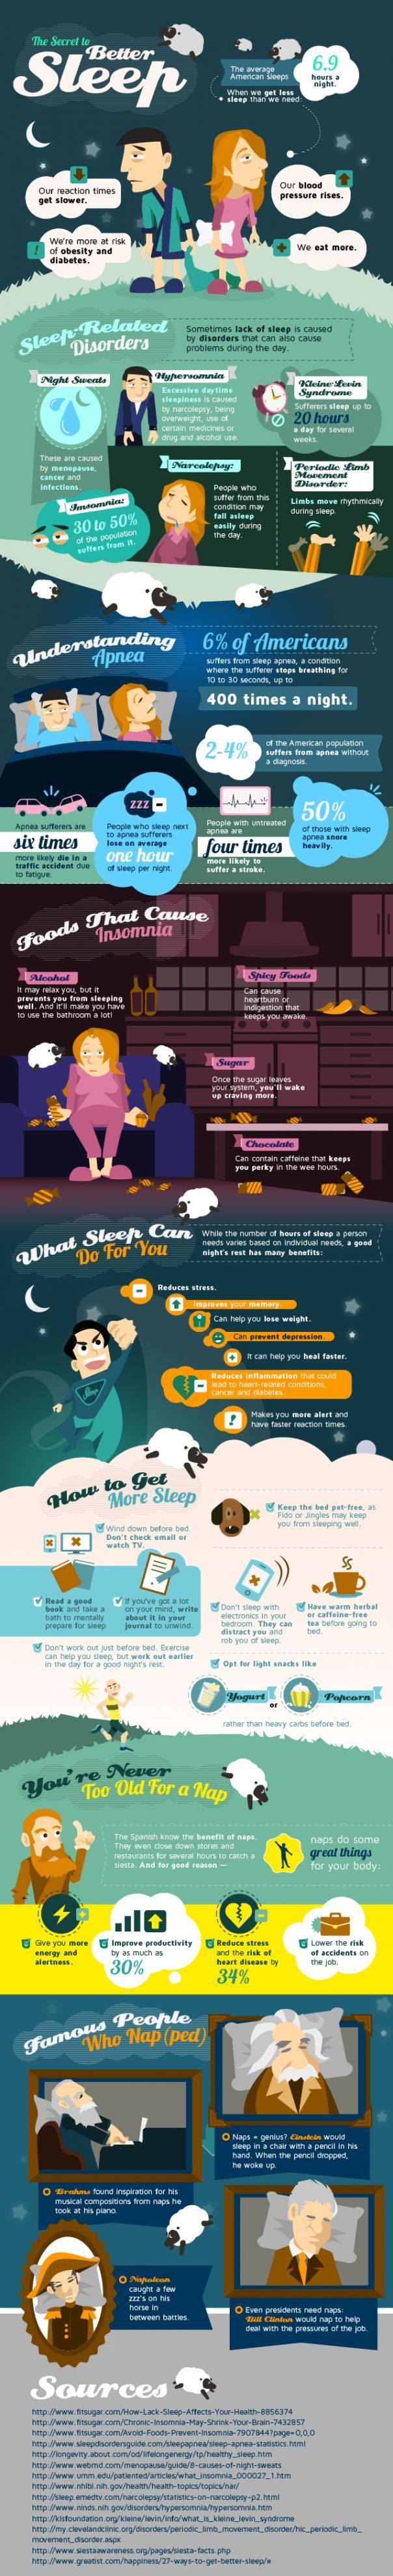 A fun breakdown on the negative effects of not getting enough sleep. #rest #sleep